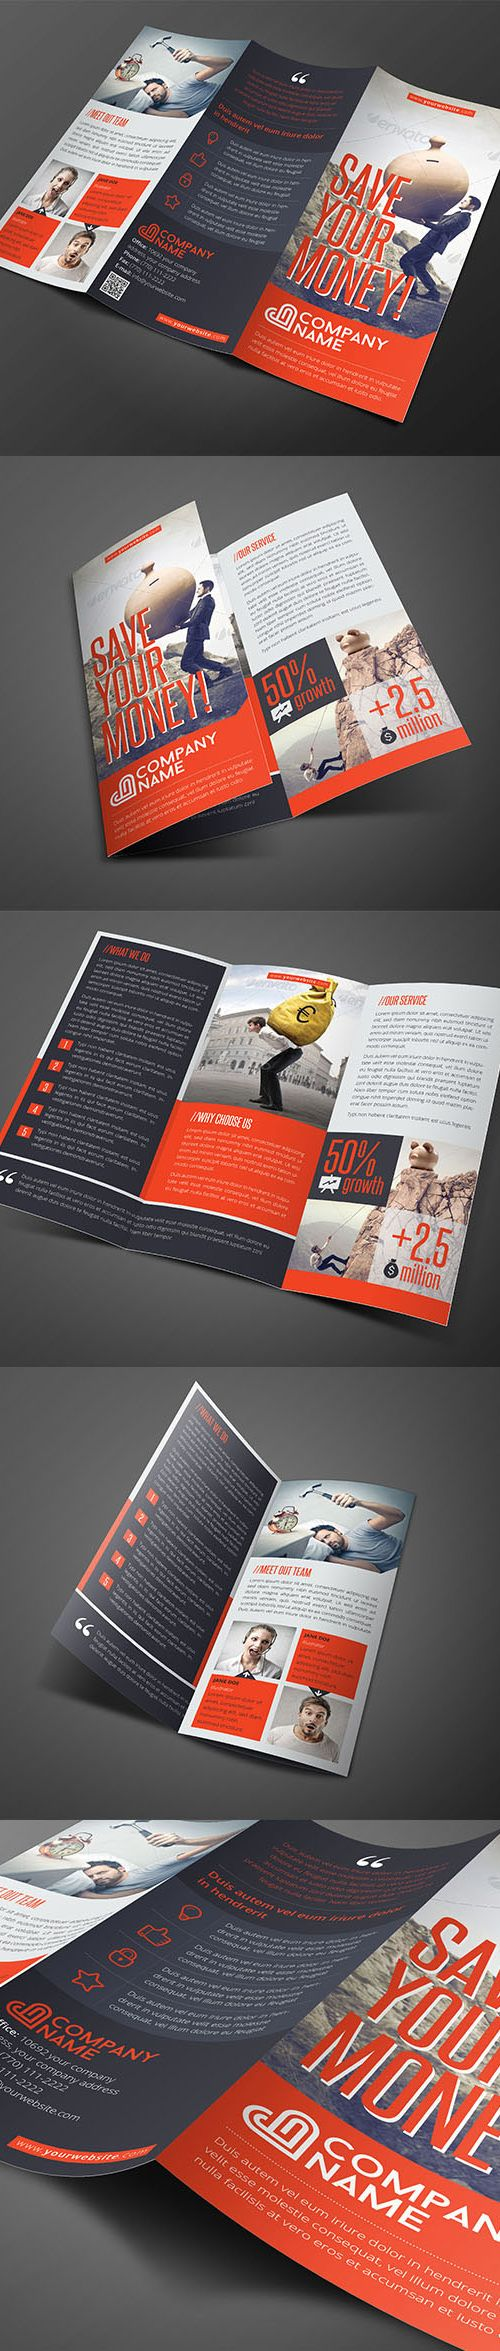 Corporate #brochure design and template.